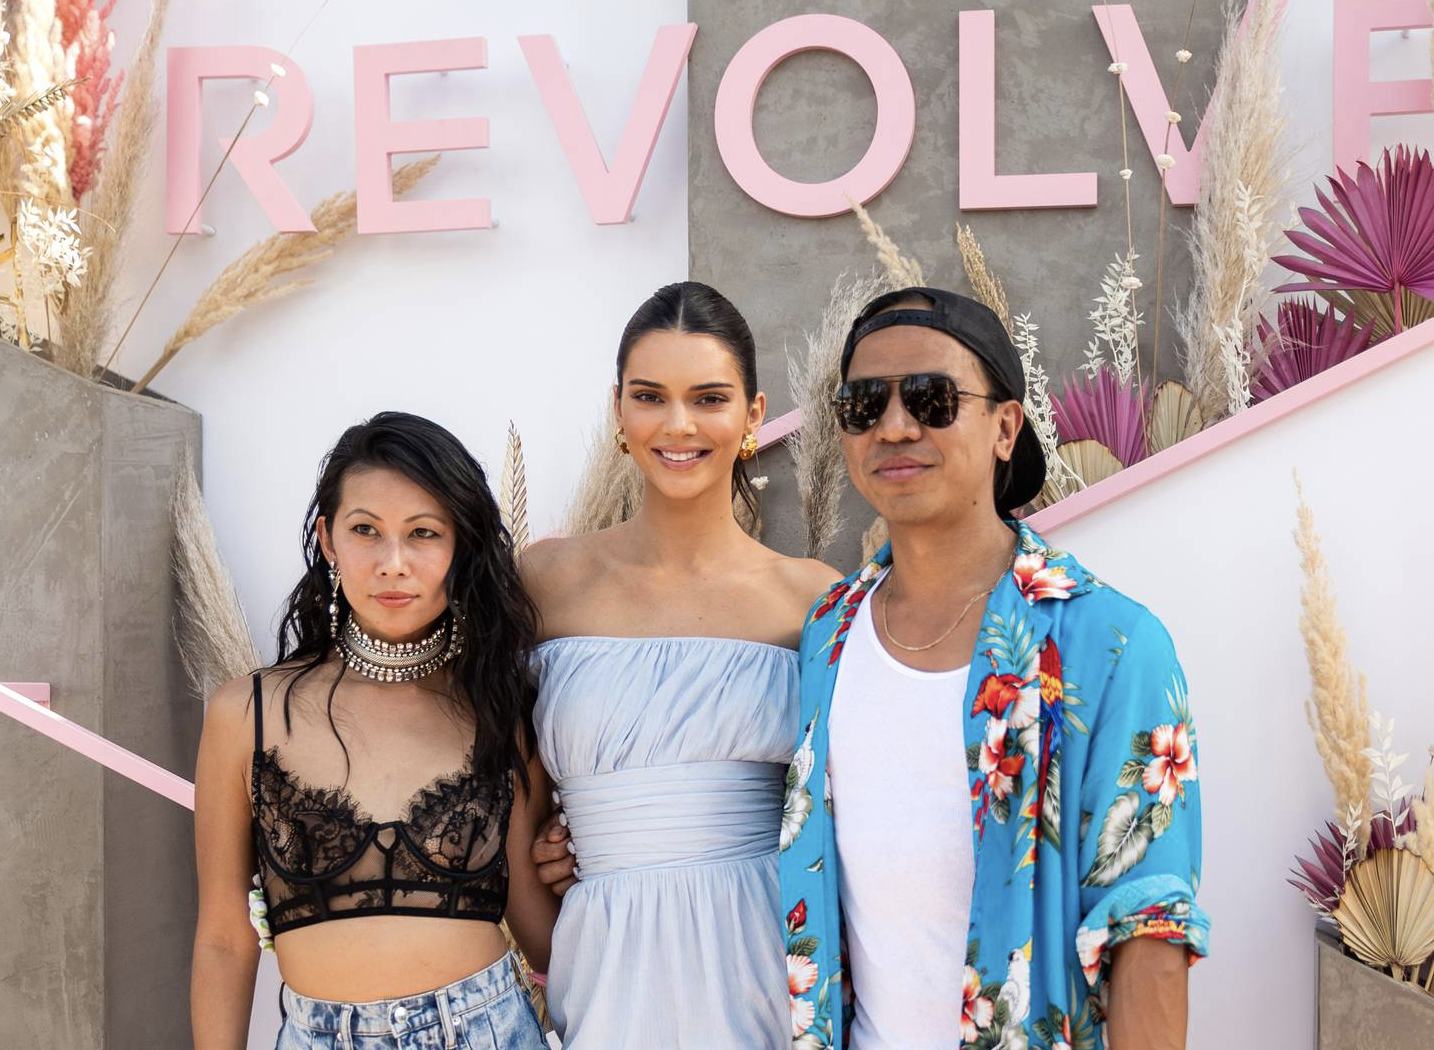 Millennial Online Fashion Retailer Revolve Trending in Wall Street Debut -